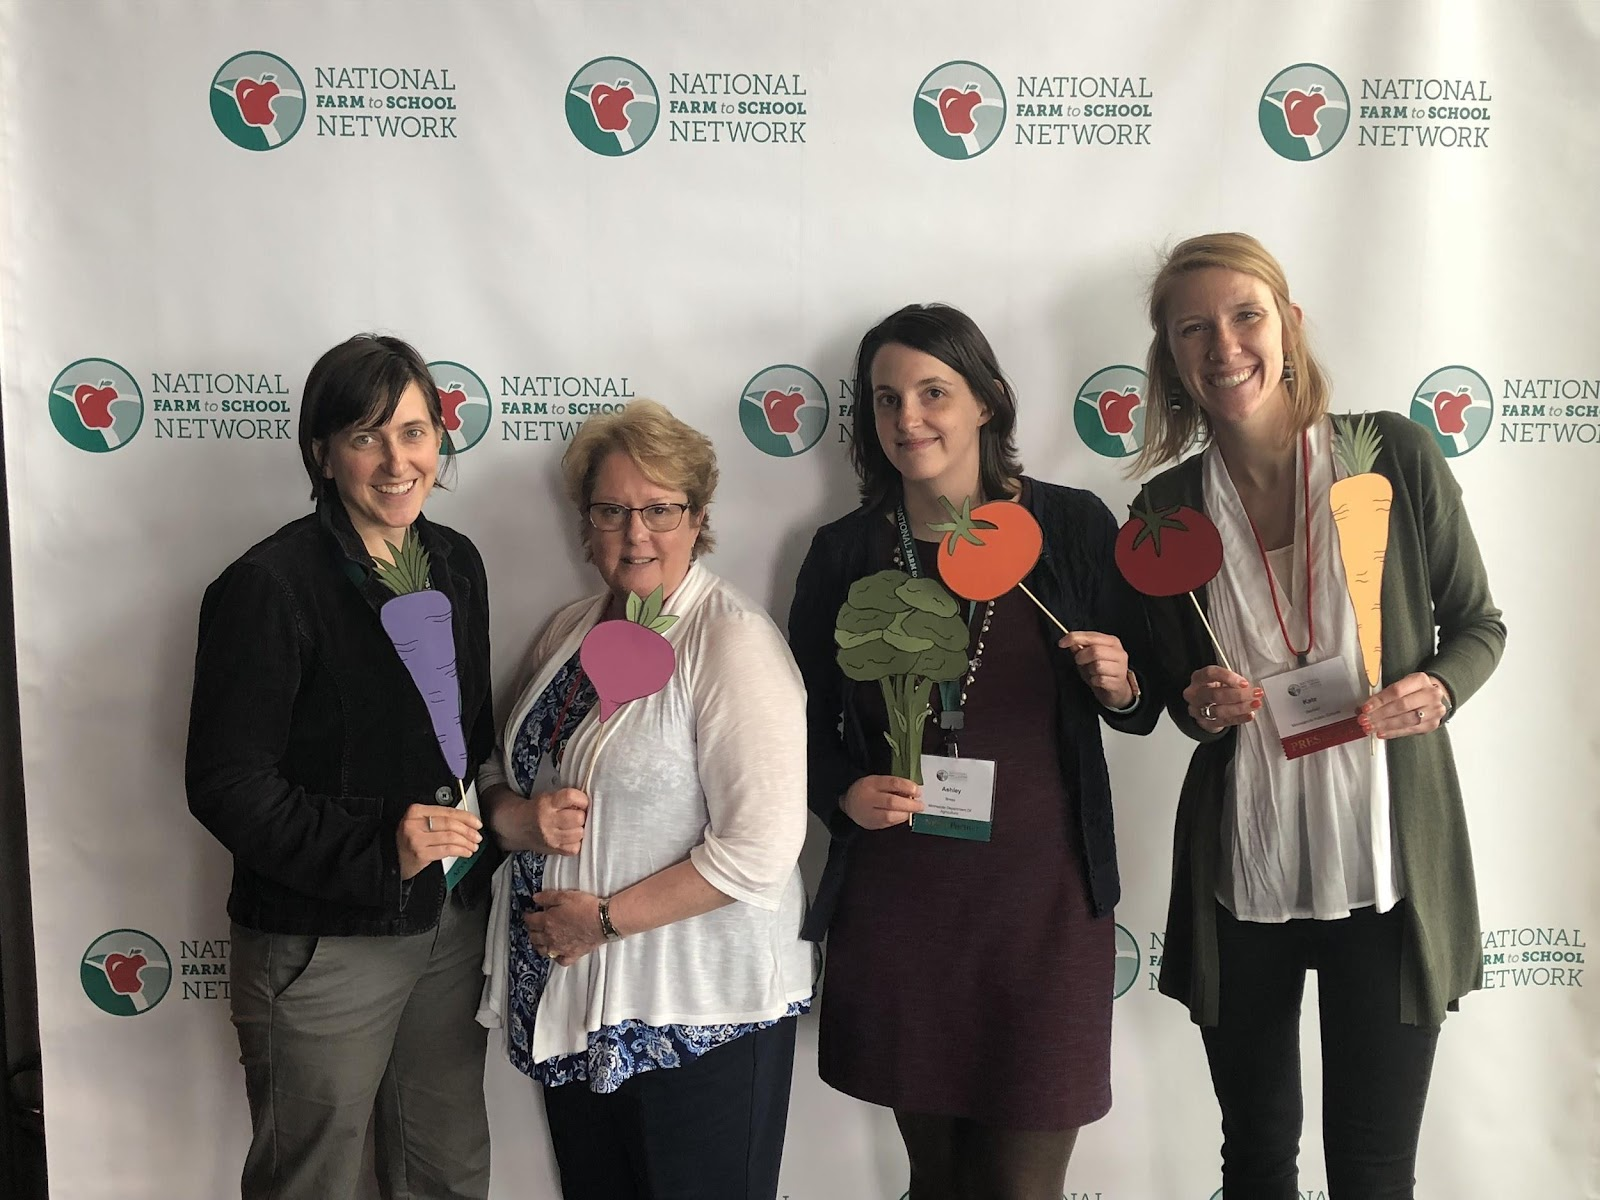 Workshop presenters from Minnesota, Grace Brogan, Carrie Frank, Ashley Bress and Kate Seybold (pictured L to R) pose for a photo with veggies at the 2018 National Farm to Cafeteria Conference.